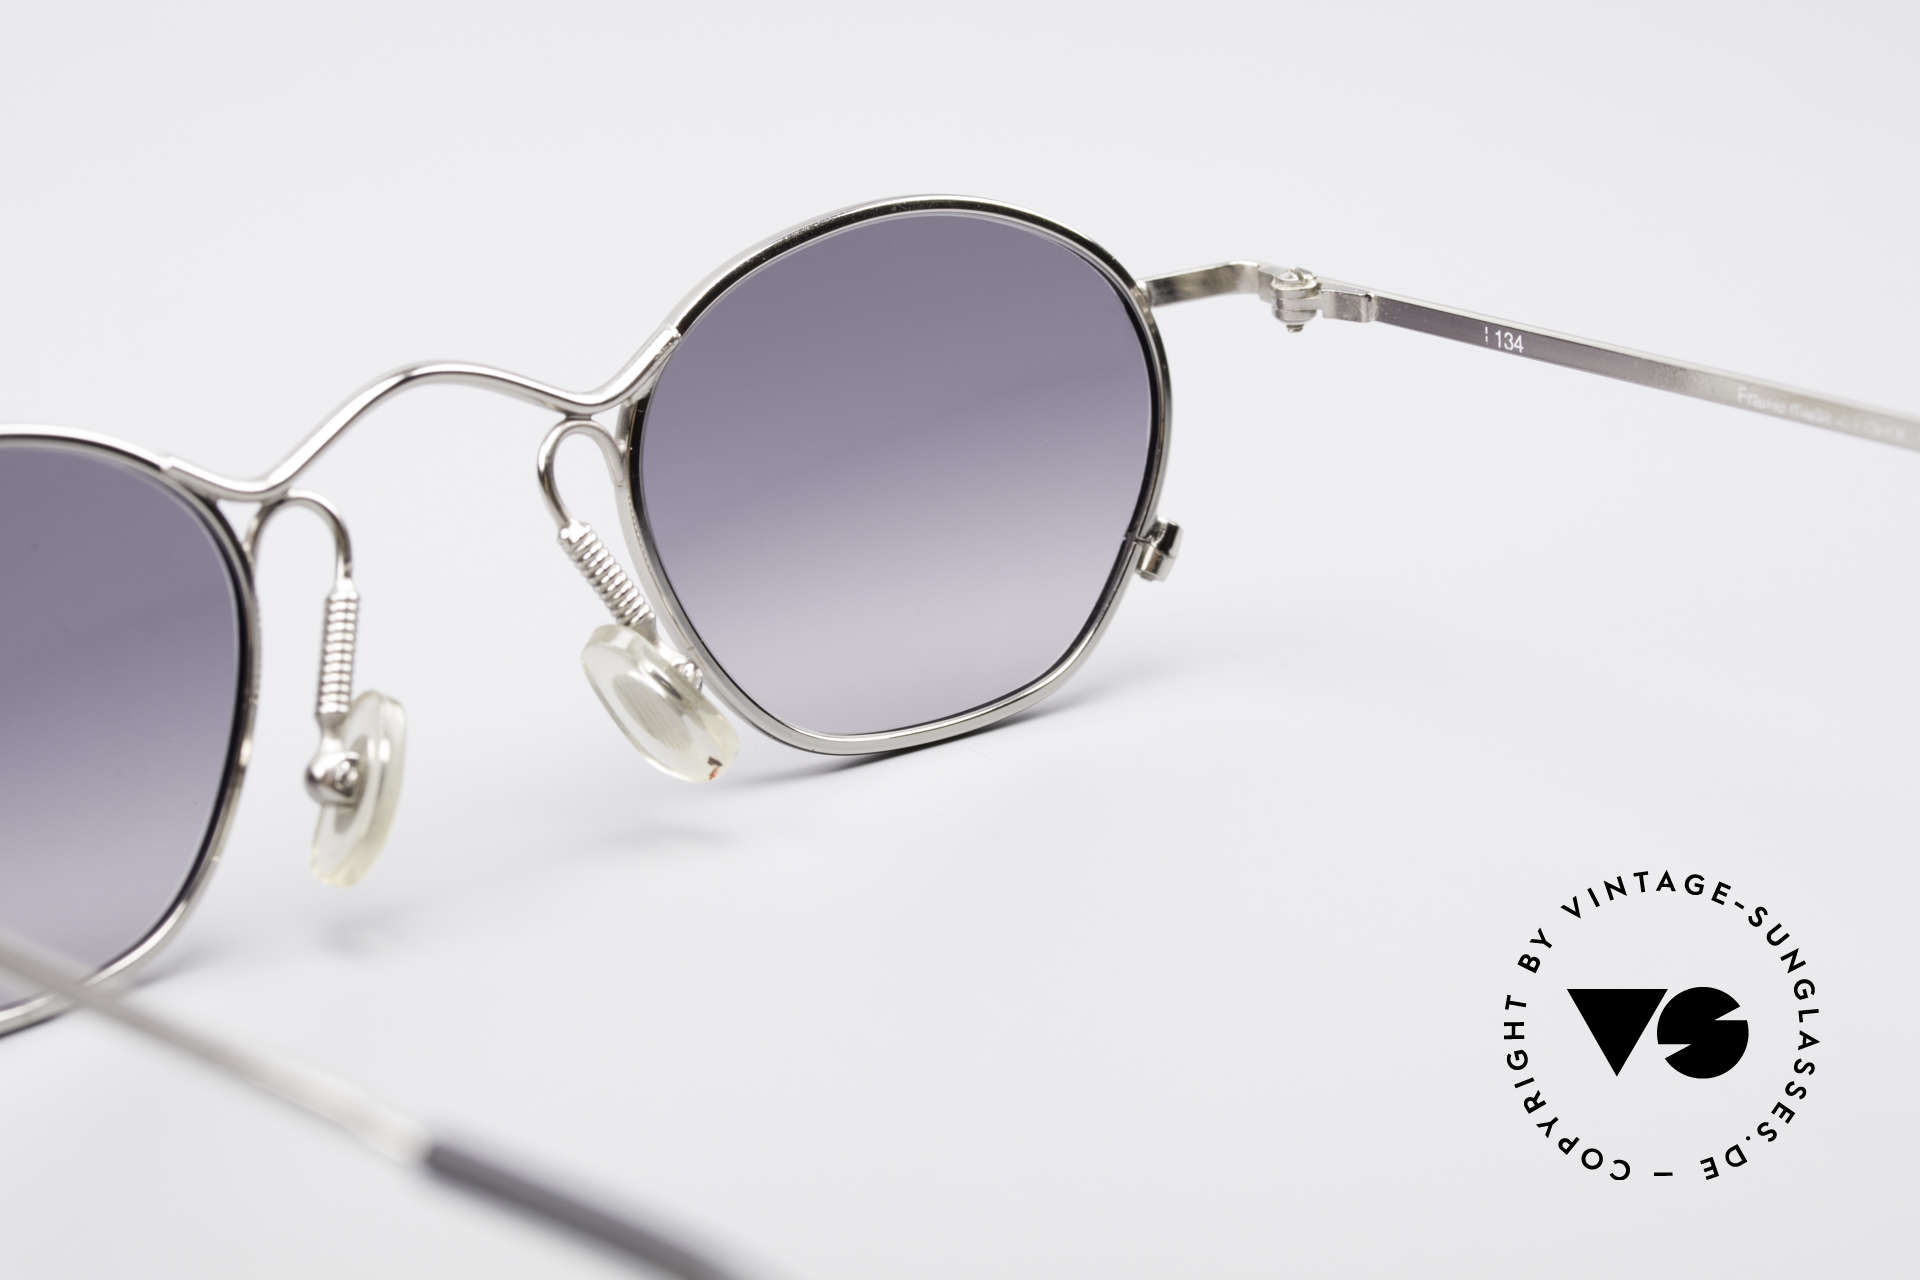 IDC 101 True Vintage No Retro Shades, Size: small, Made for Men and Women